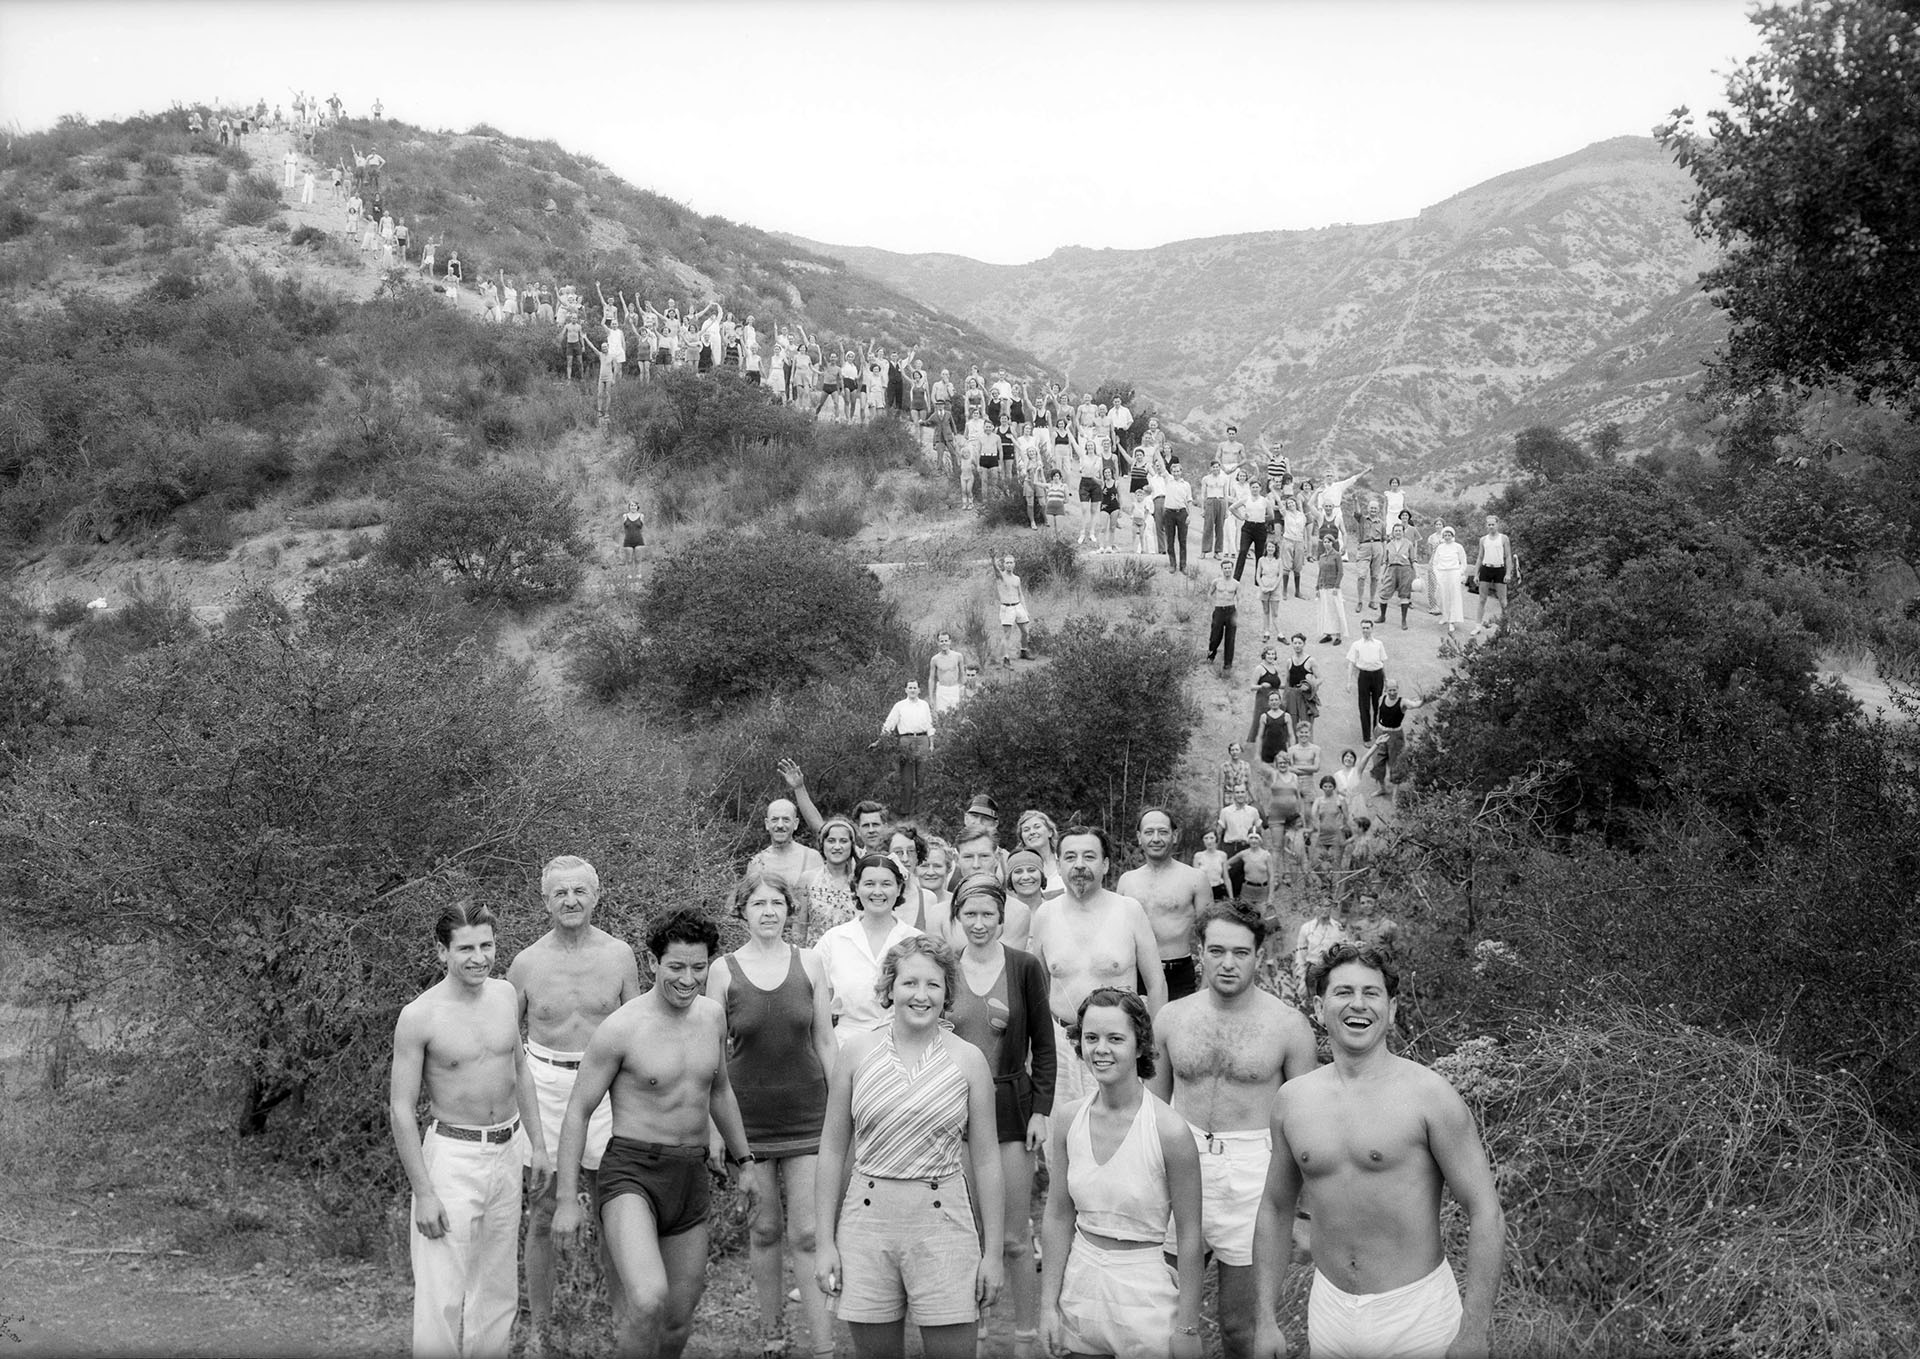 Paul Bragg (front-right) leads his Wanderlusters Hiking Club up Mt. Hollywood in Griffith Park in 1932. Courtesy of the USC Libraries - Dick Whittington Photography Collection.